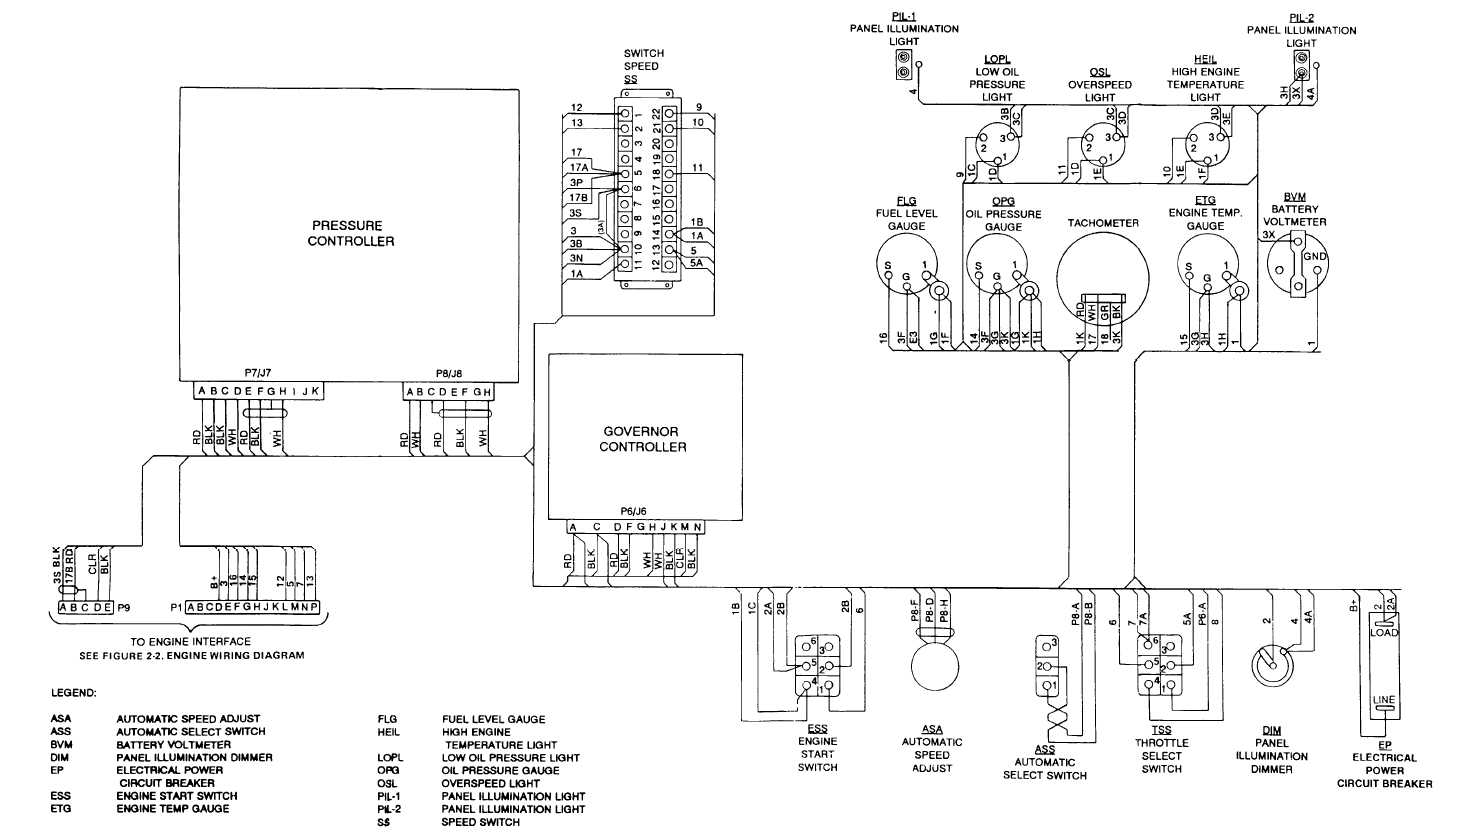 TM 10 4320 315 24_18_1 figure 2 1 control panel wiring diagram (sheet 1 of 4) control panel wiring diagram at honlapkeszites.co